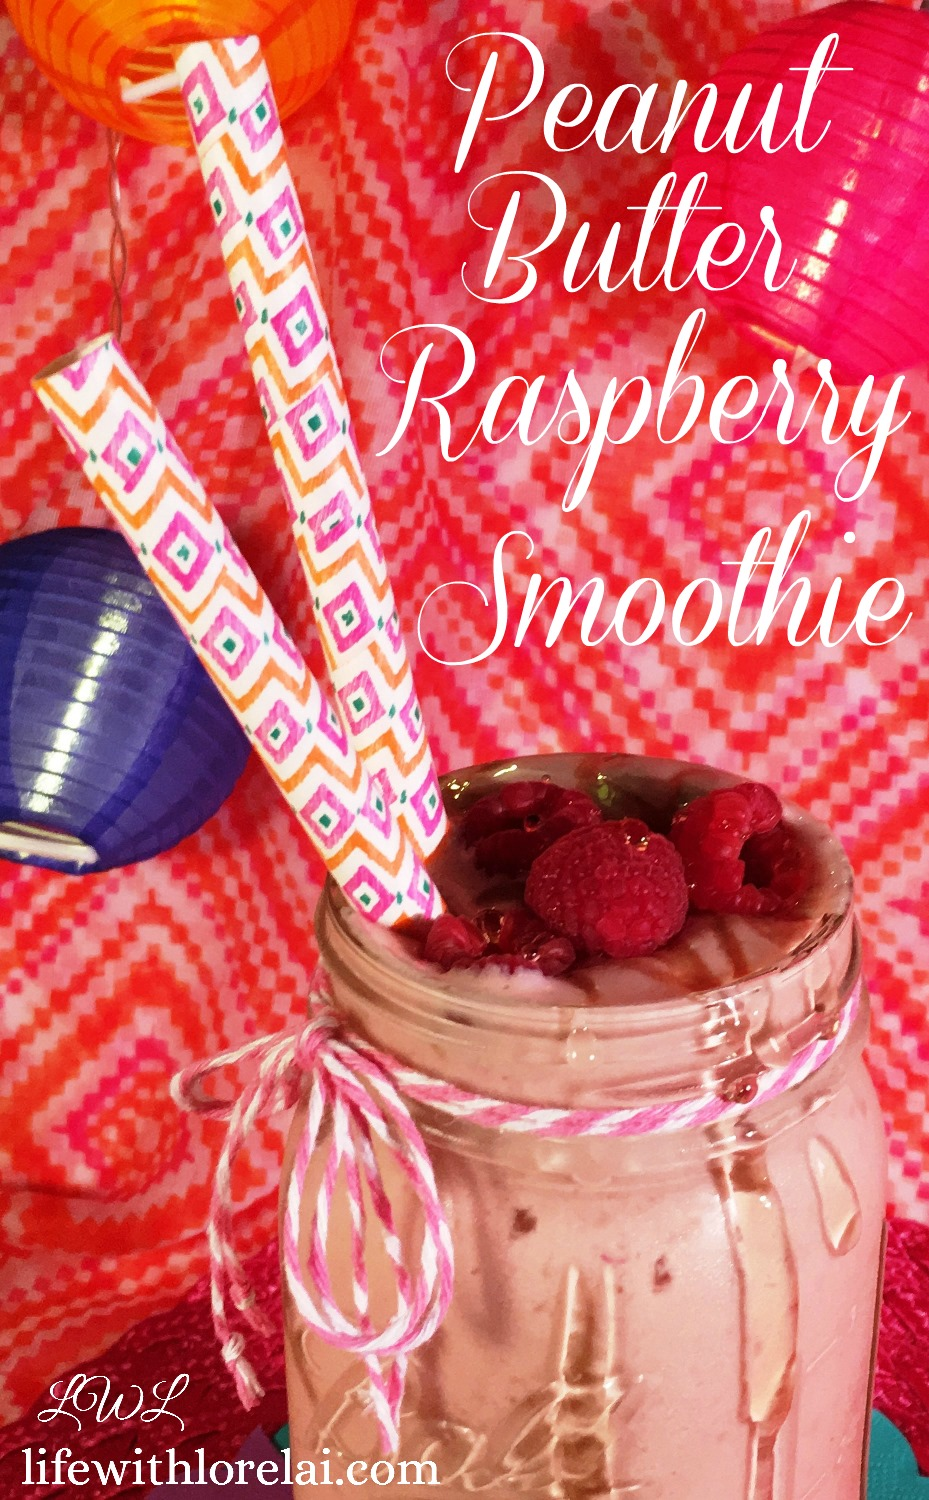 Peanut Butter Raspberry Smoothie Recipe - Perfect for breakfast, snack, or work-out.